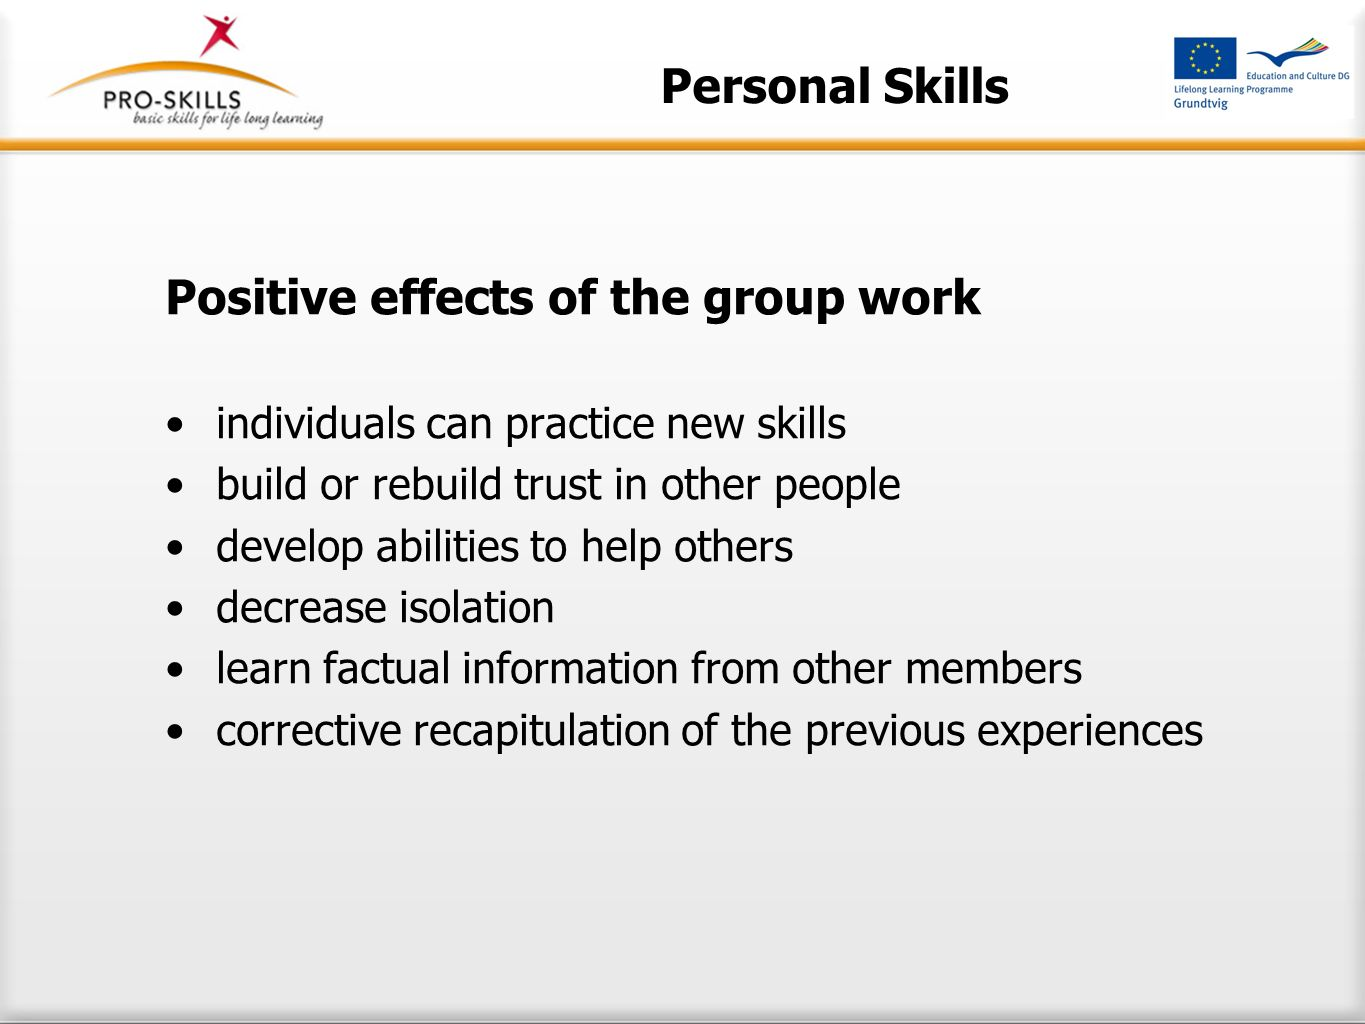 Positive effects of the group work individuals can practice new skills build or rebuild trust in other people develop abilities to help others decrease isolation learn factual information from other members corrective recapitulation of the previous experiences